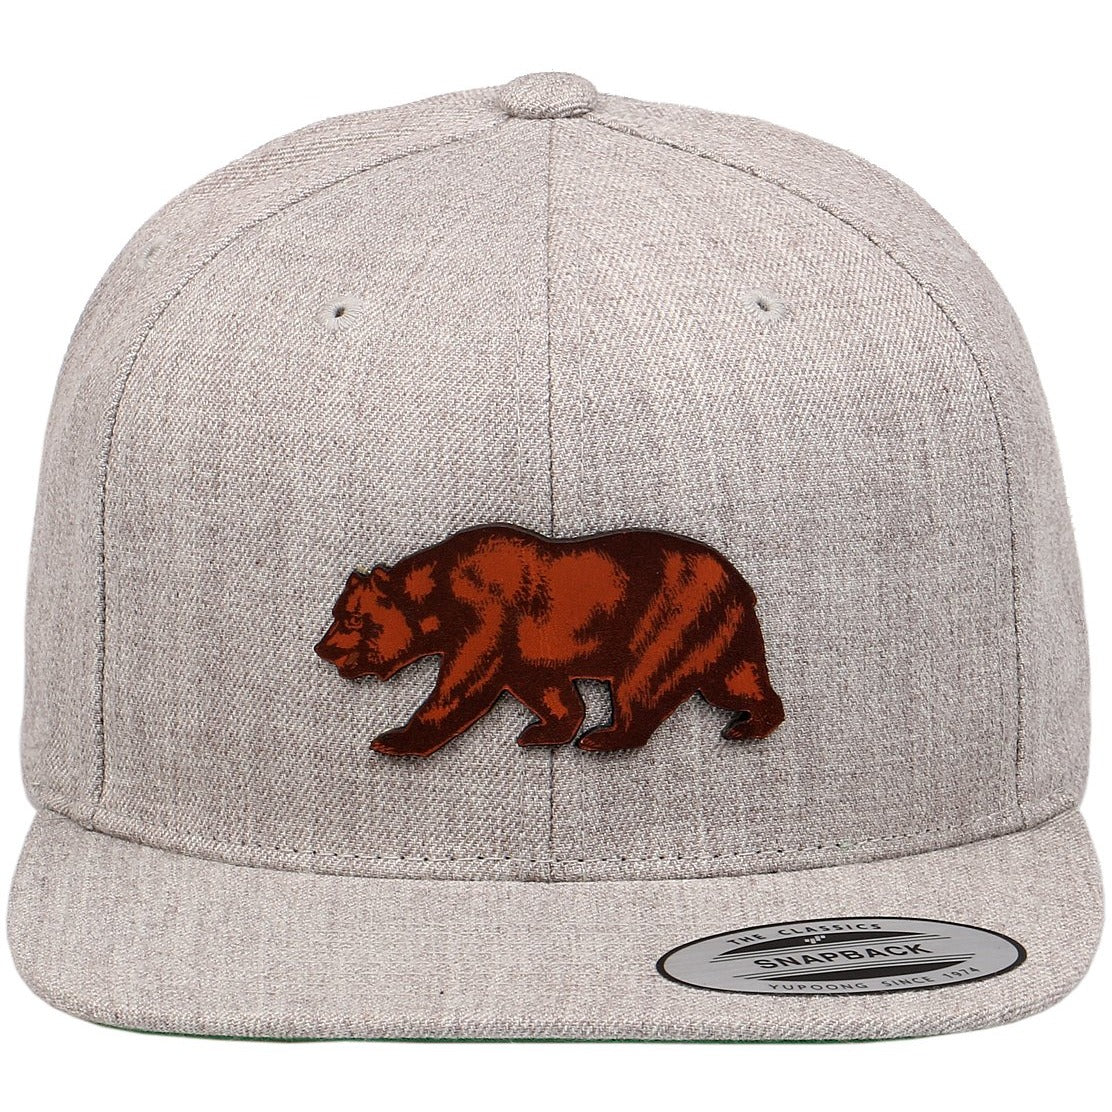 California Grizzly Bear Cut Out Leather Patch on Flexfit Yupoong Classics  Snapback 3387d119c15